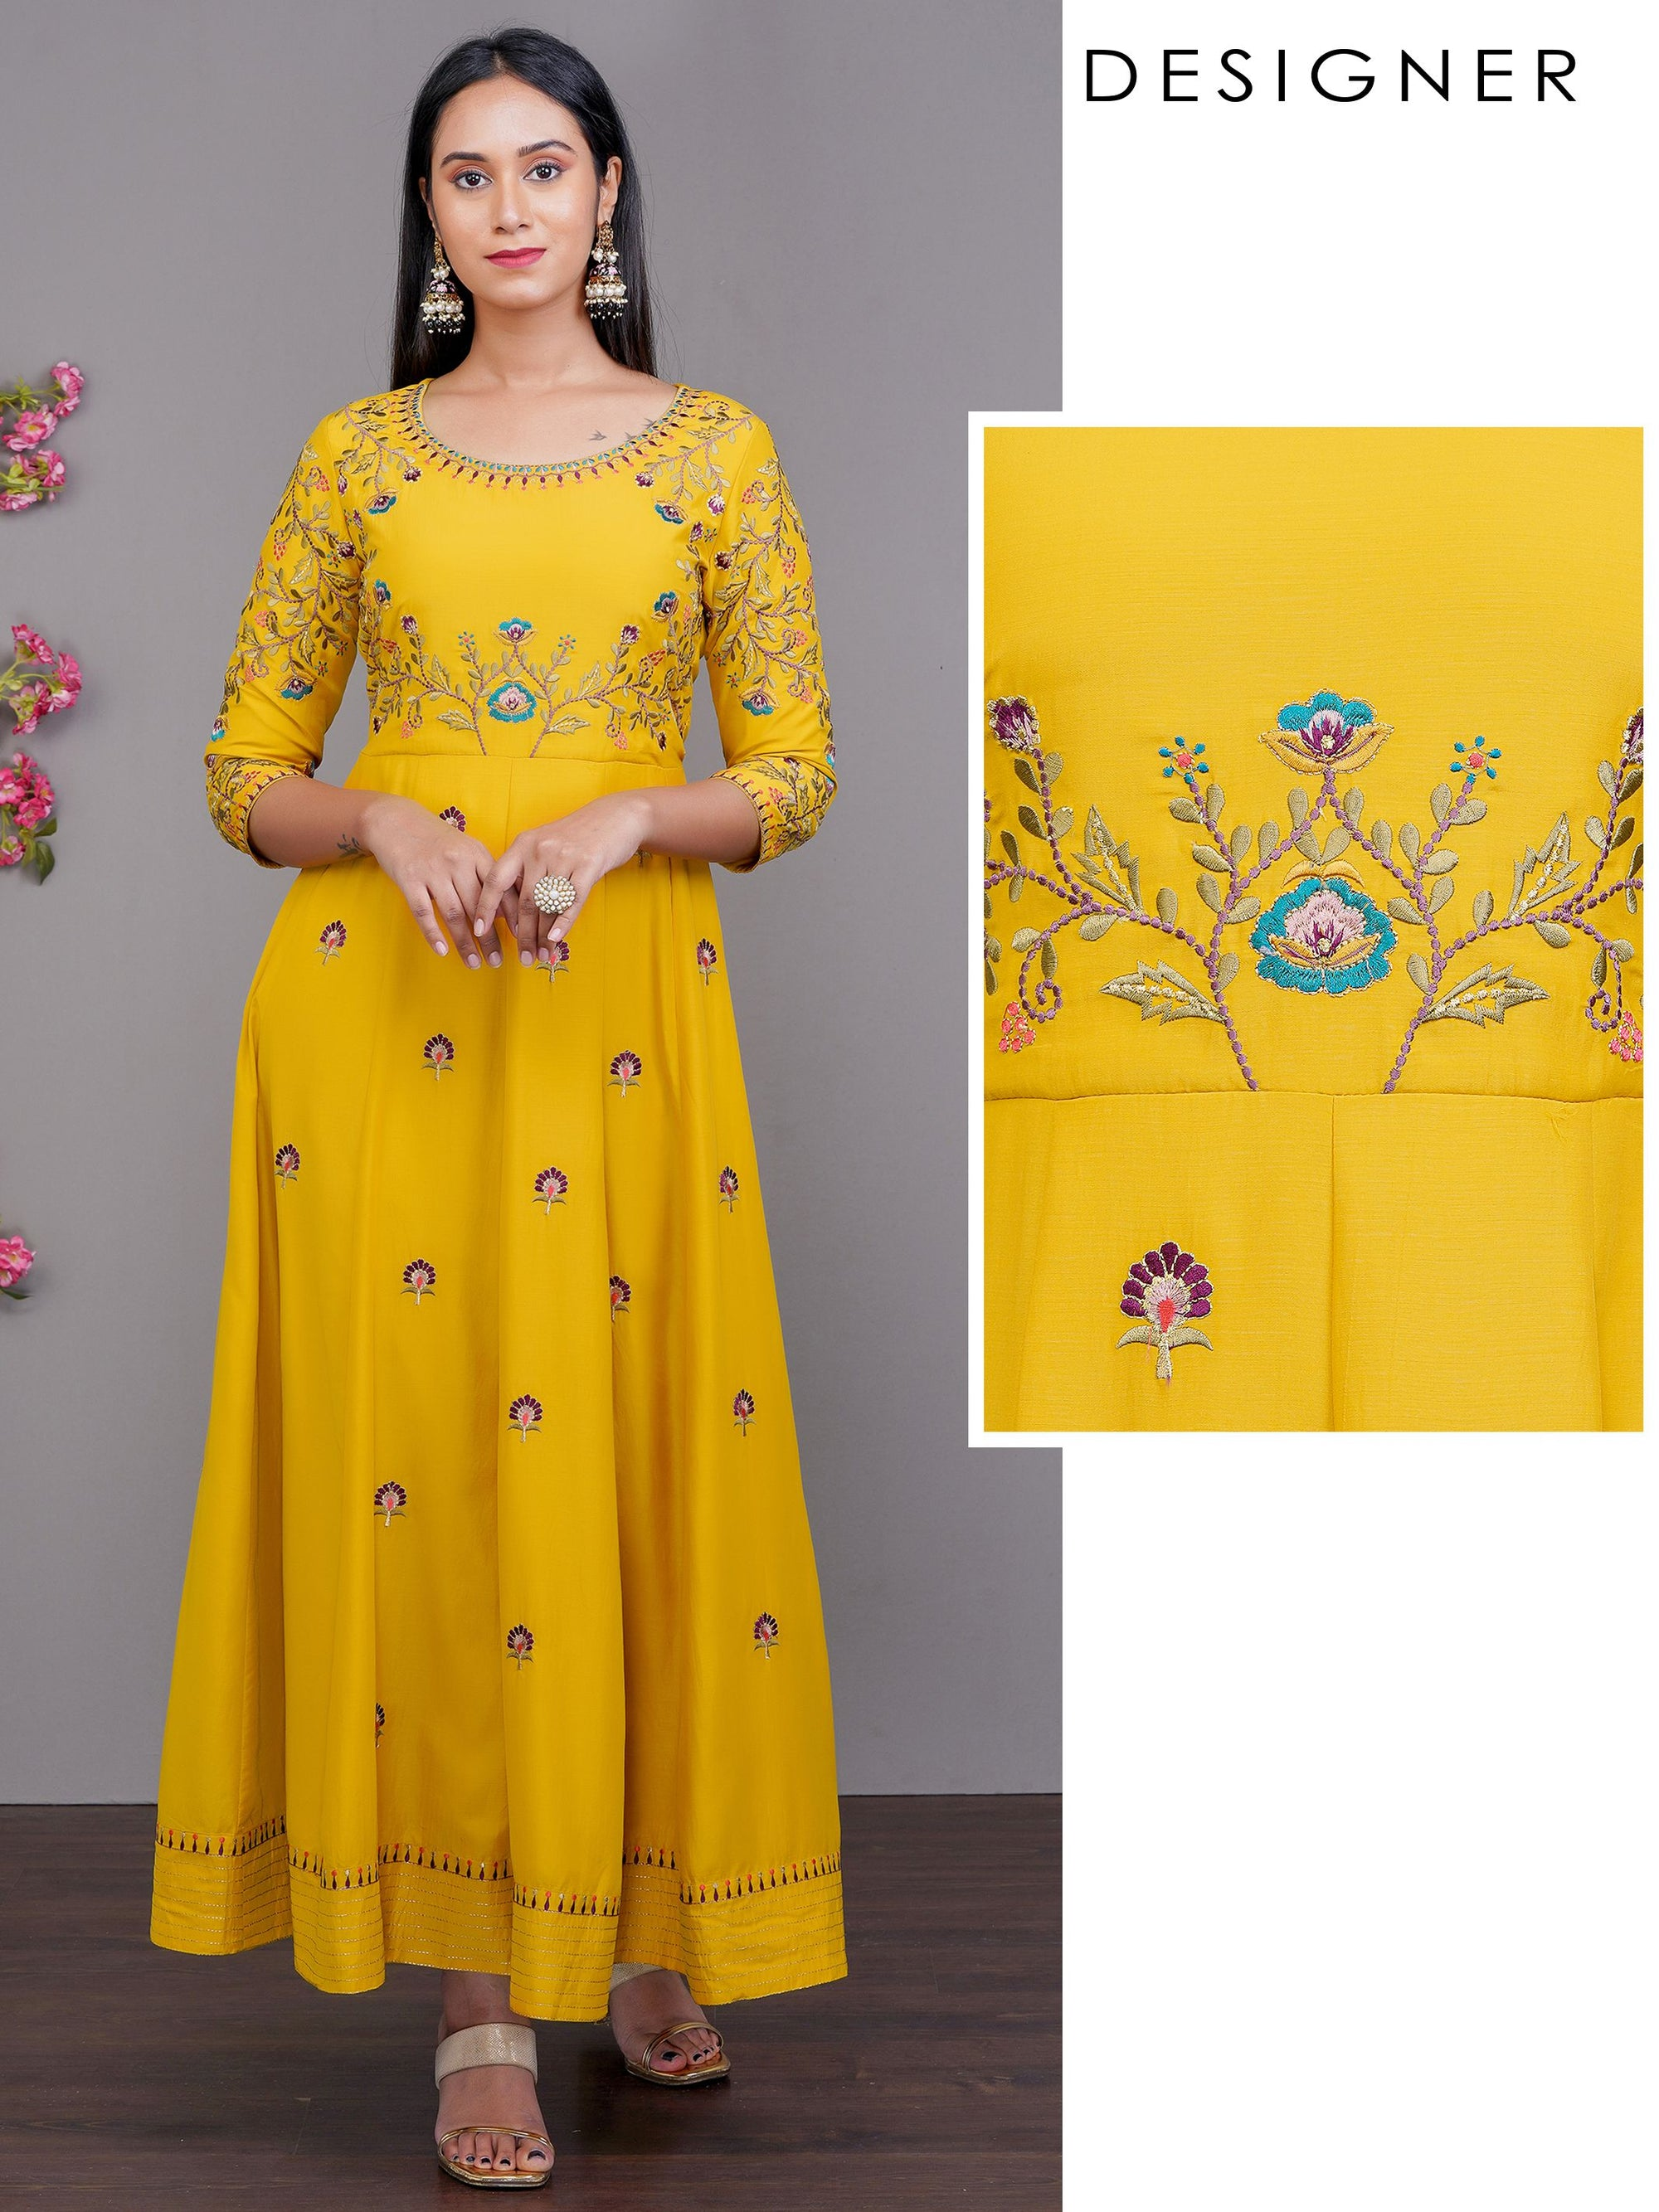 Floral & Chain Embroidered Multi Panel Designer Maxi – Mustard